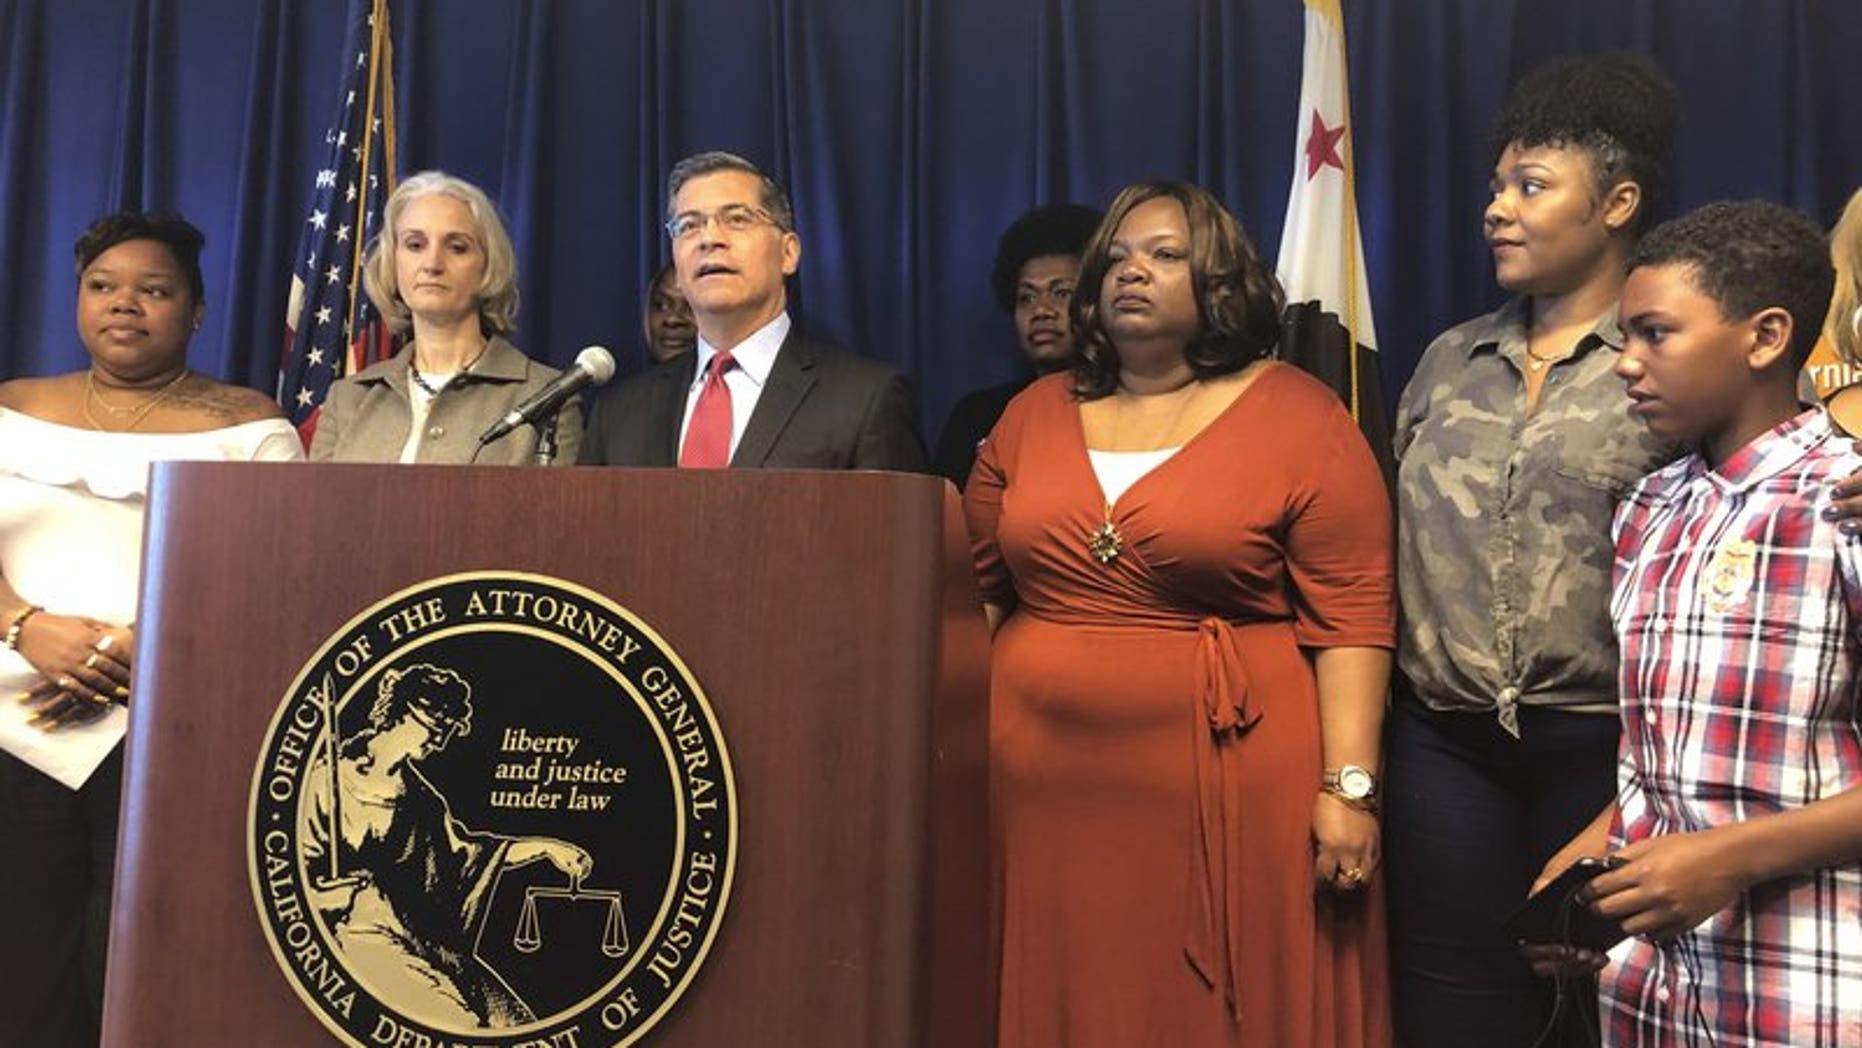 California Attorney General Xavier Becerra announces a lawsuit against the Trump Administration's new rule affecting home health care workers on Monday, May 13, 2019, in Sacramento, California.  (AP Photo/Adam Beam)